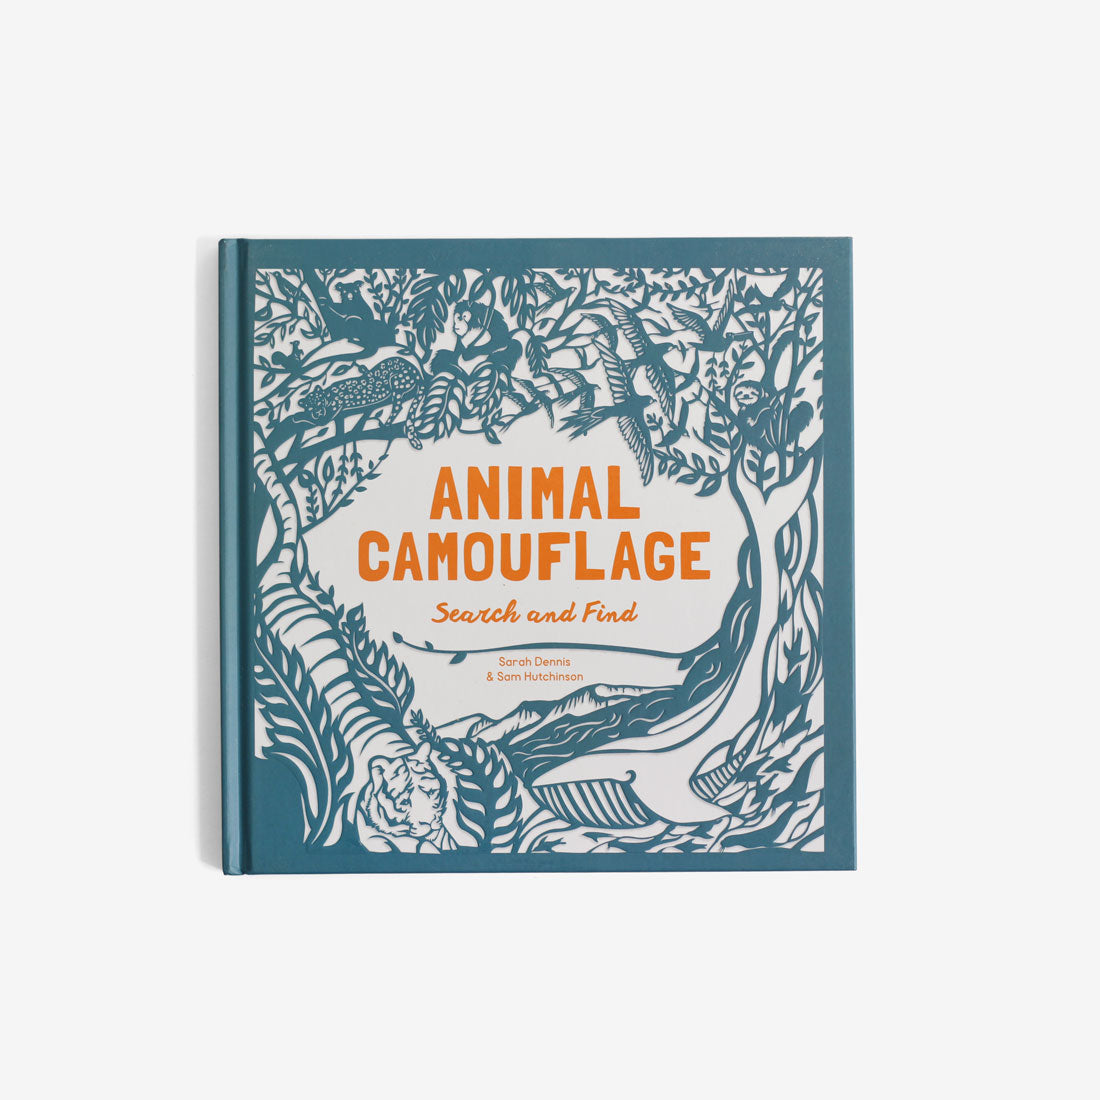 Animal Camouflage - Search and Find